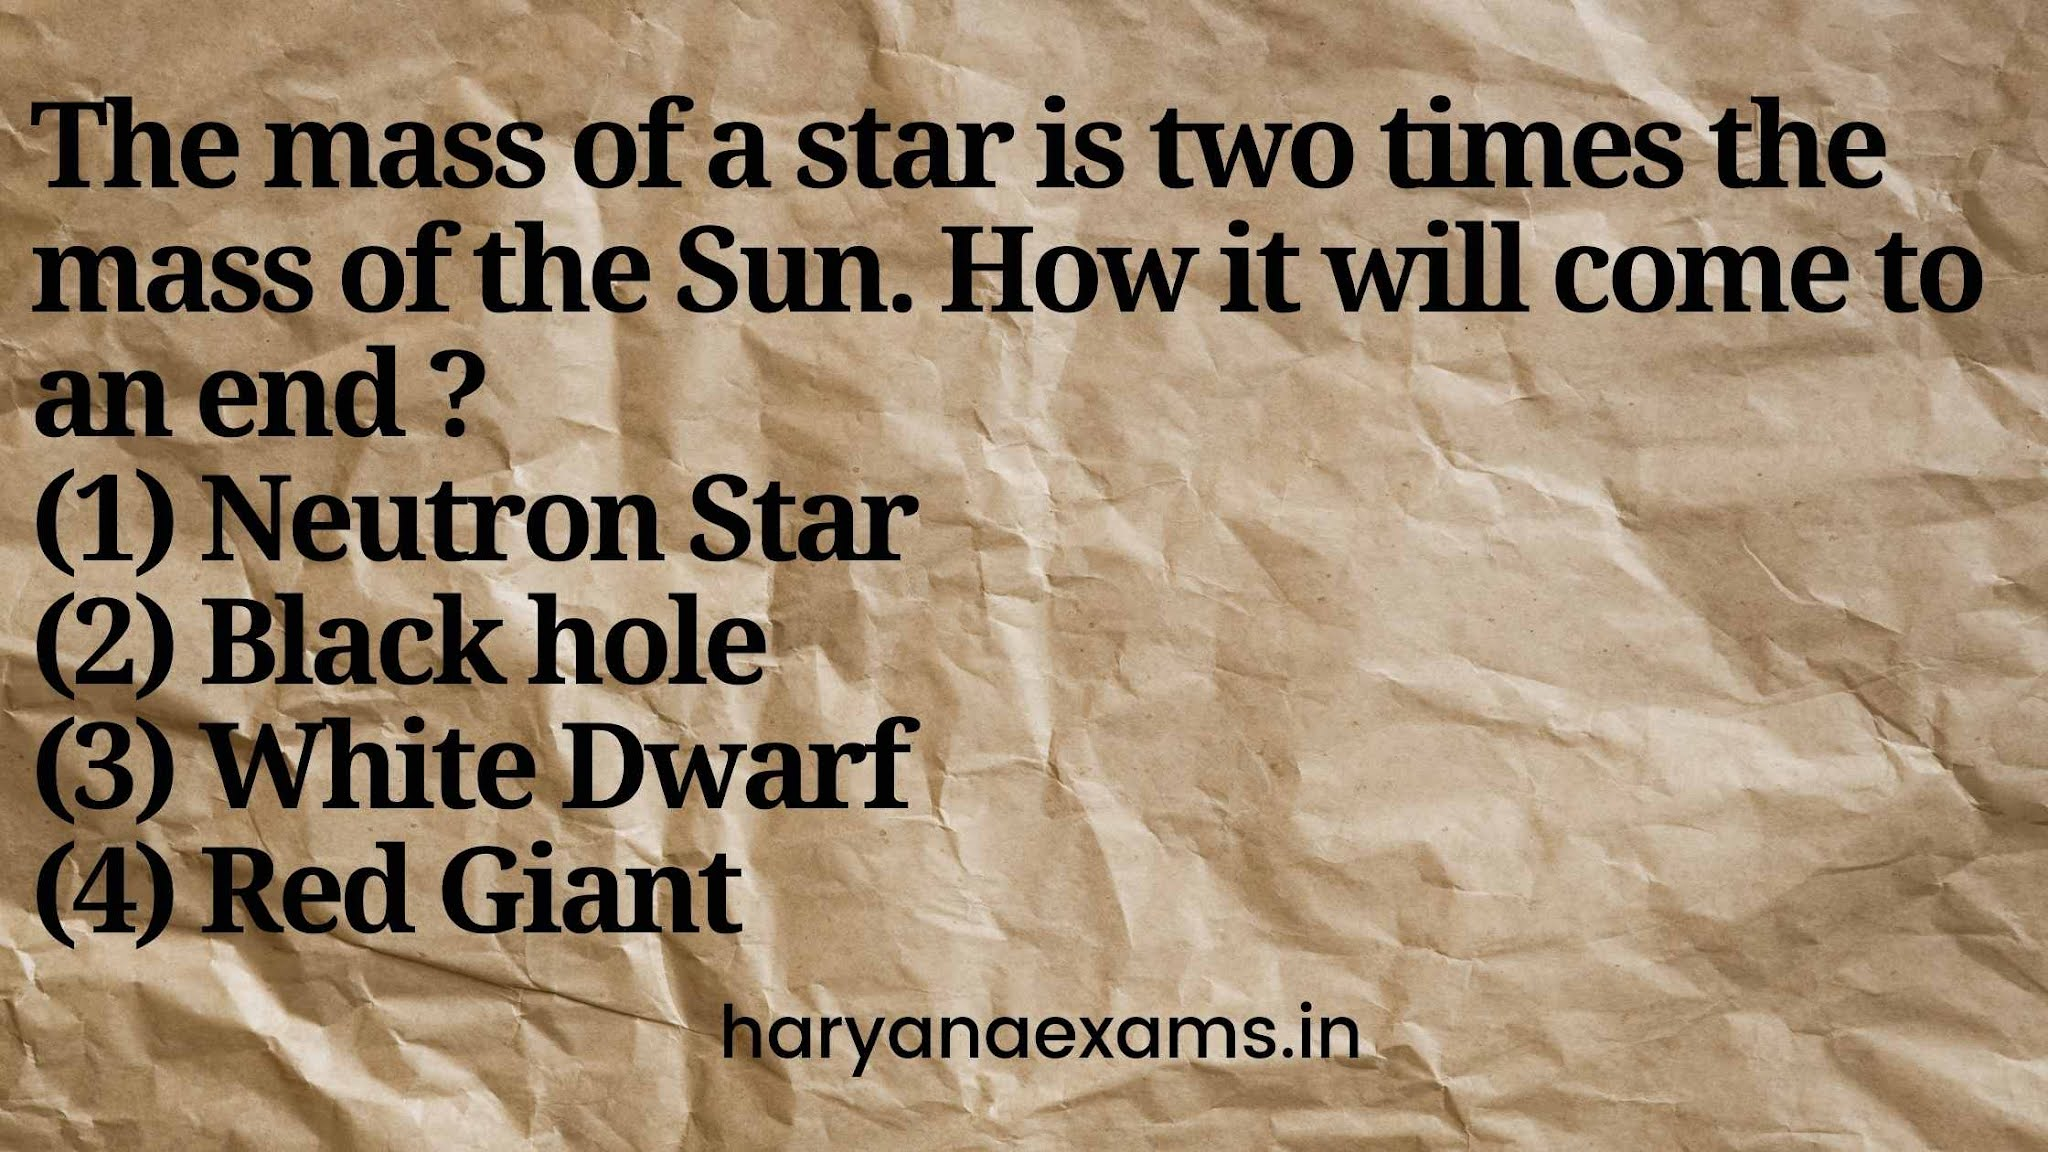 The mass of a star is two times the mass of the Sun. How it will come to an end ?   (1) Neutron Star   (2) Black hole   (3) White Dwarf   (4) Red Giant